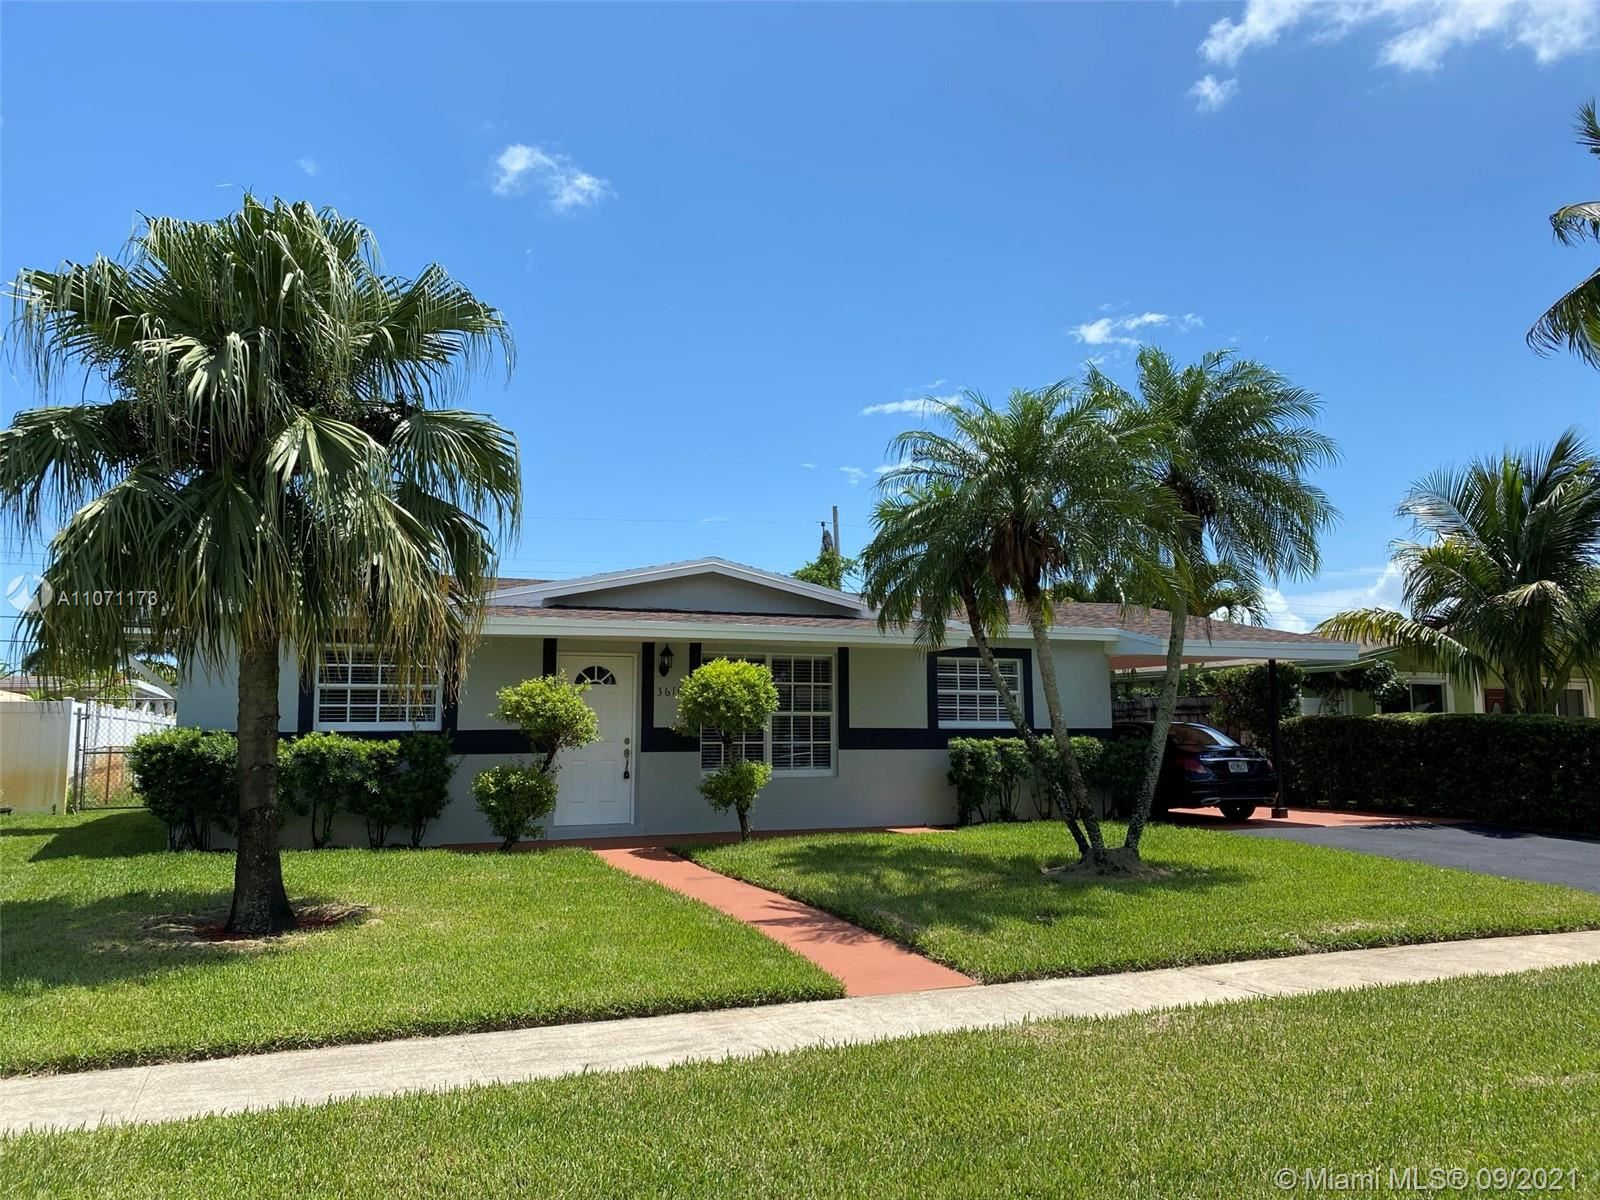 Photo of 3610 NW 41st St, Lauderdale Lakes, FL 33309 (MLS # A11071173)